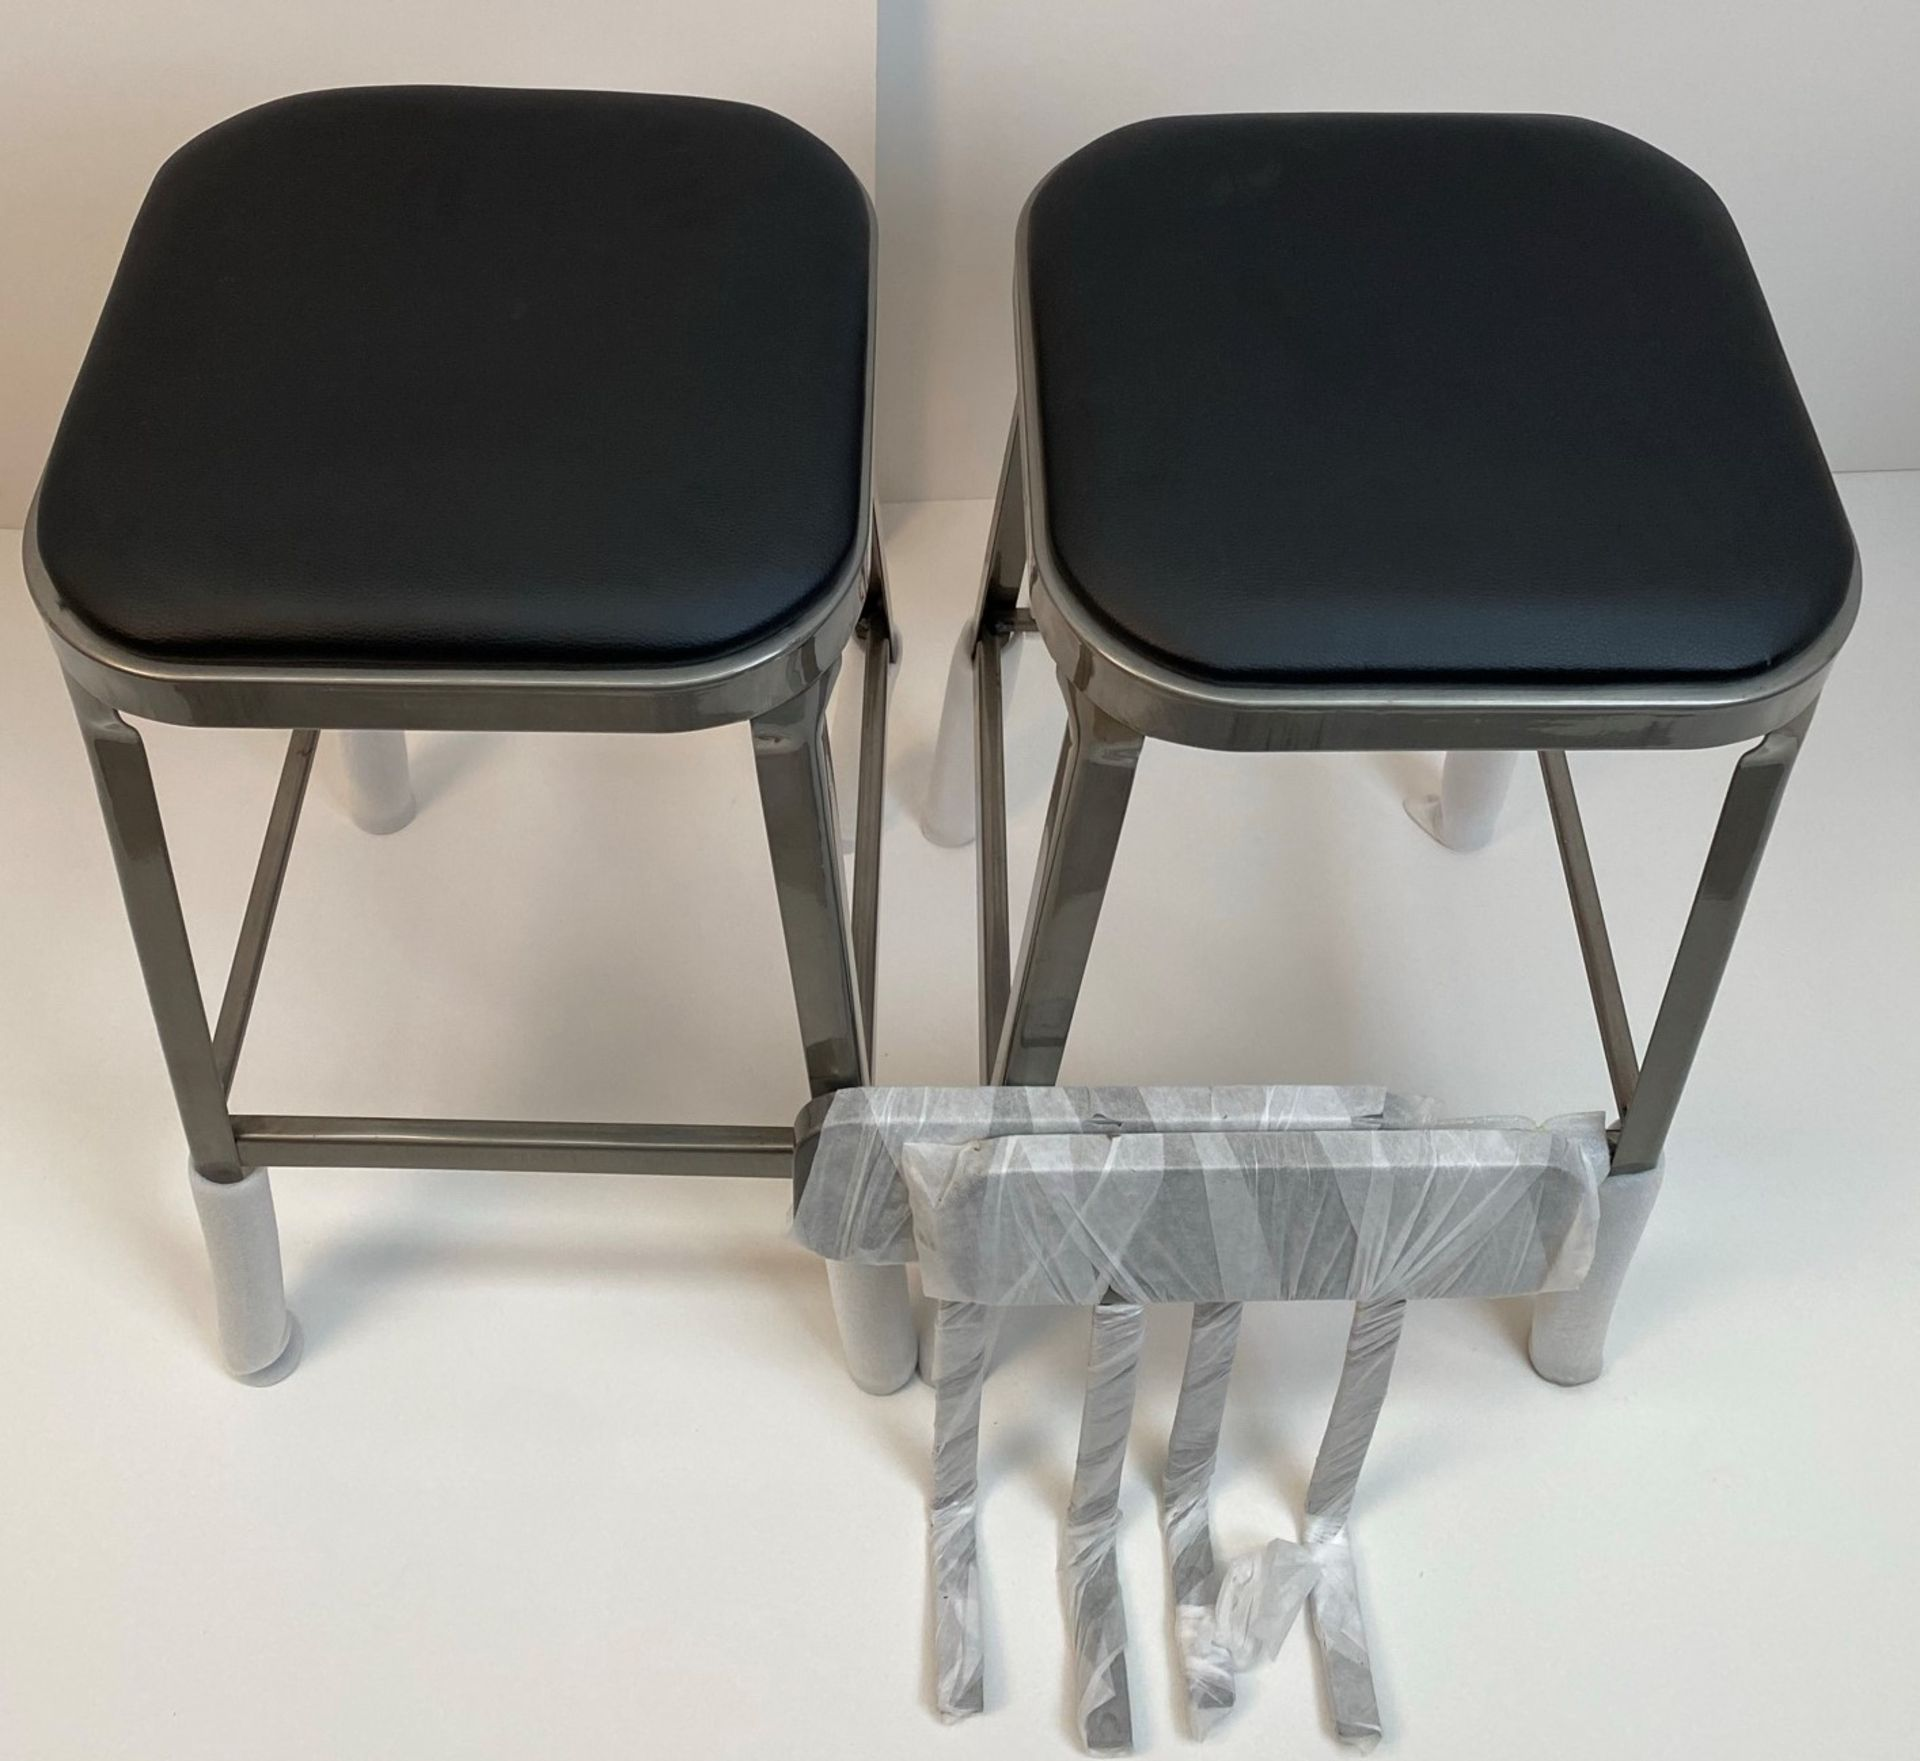 2 x Calypso Brushed Transparent Finish Metal Framed High Bar Stools with Black Pad and Optional - Image 2 of 2